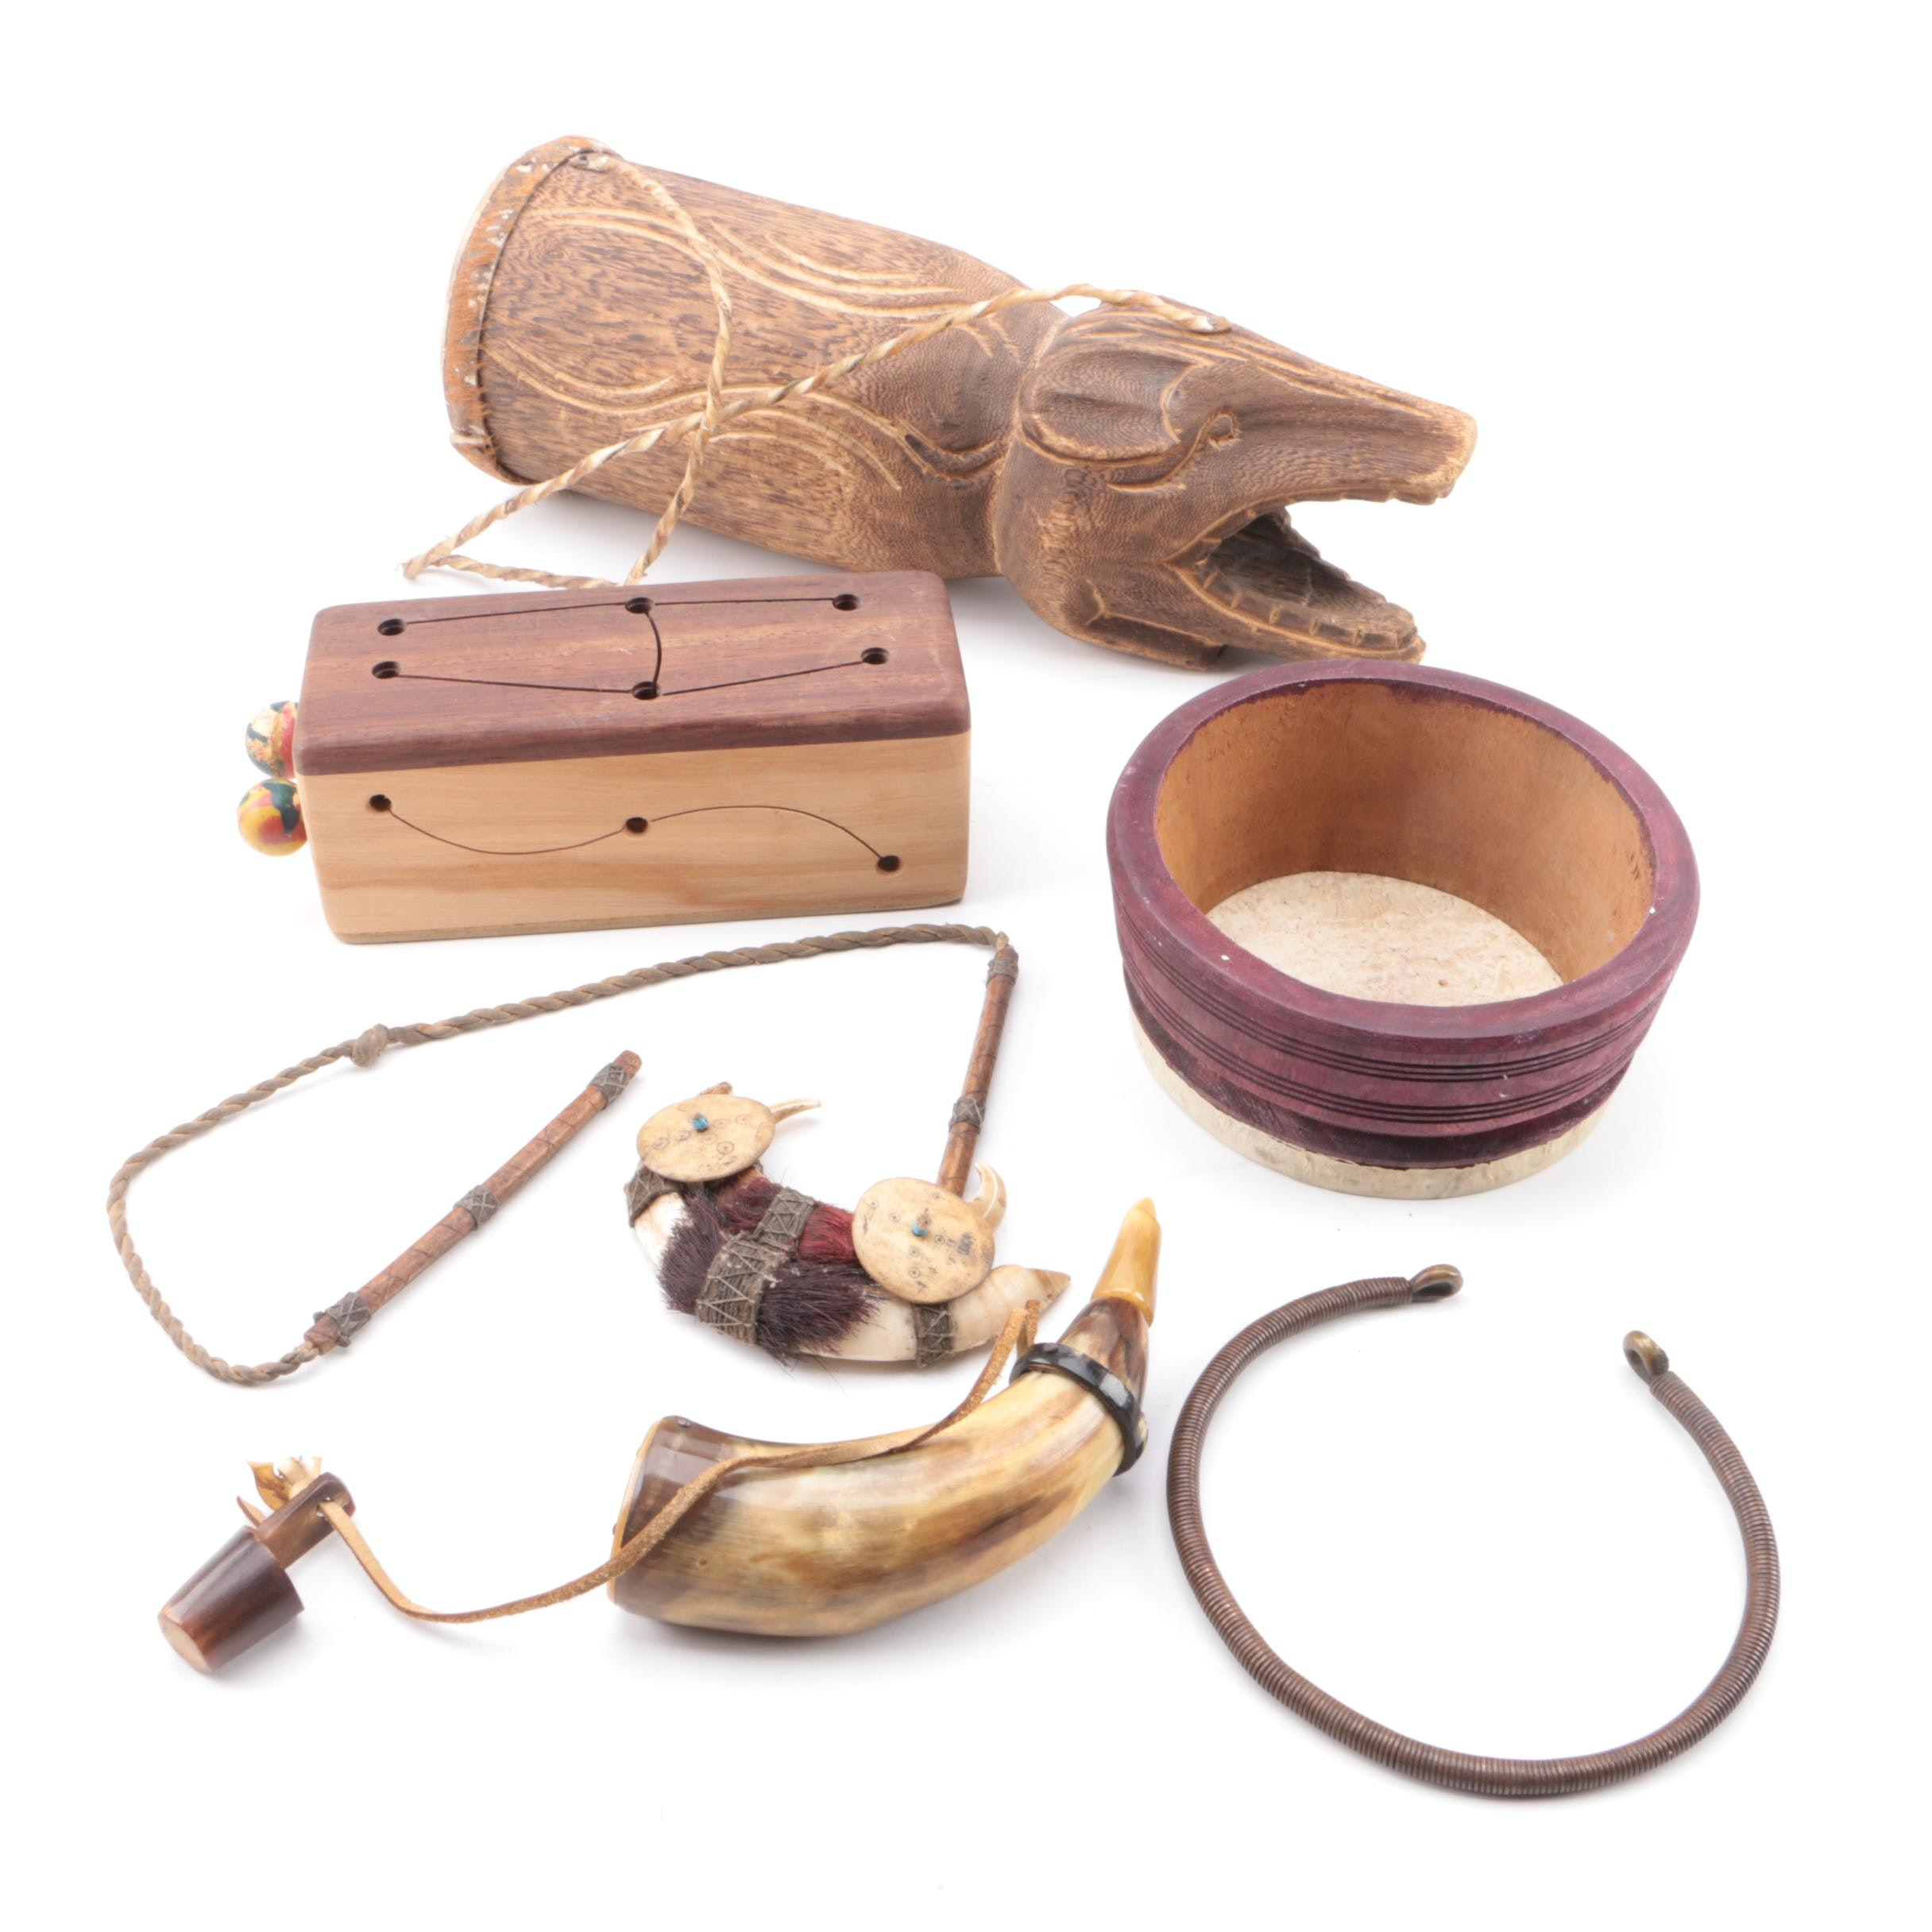 C. White Hand Carved Tongue Drum, Powder Horn, Boar Tusk Necklace and More